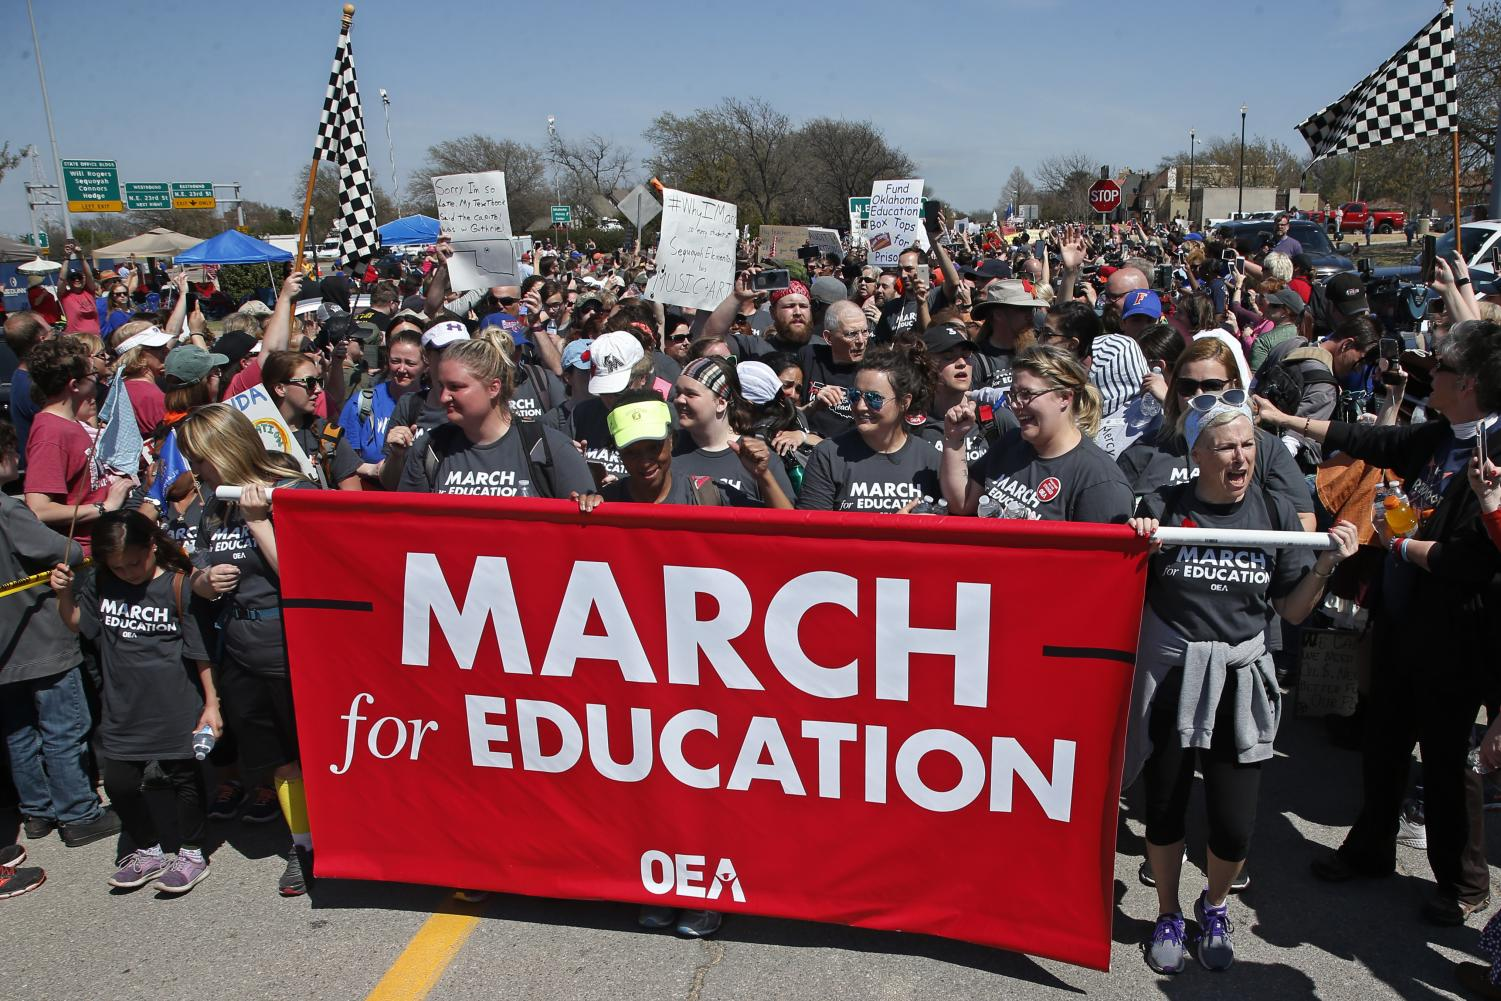 Marchers cheer as they cross the finish line at the state Capitol after marching 110 miles from Tulsa, Okla., as protests continue over public school funding, in Oklahoma City, Tuesday, April 10, 2018. (SUE OGROCKI | AP)